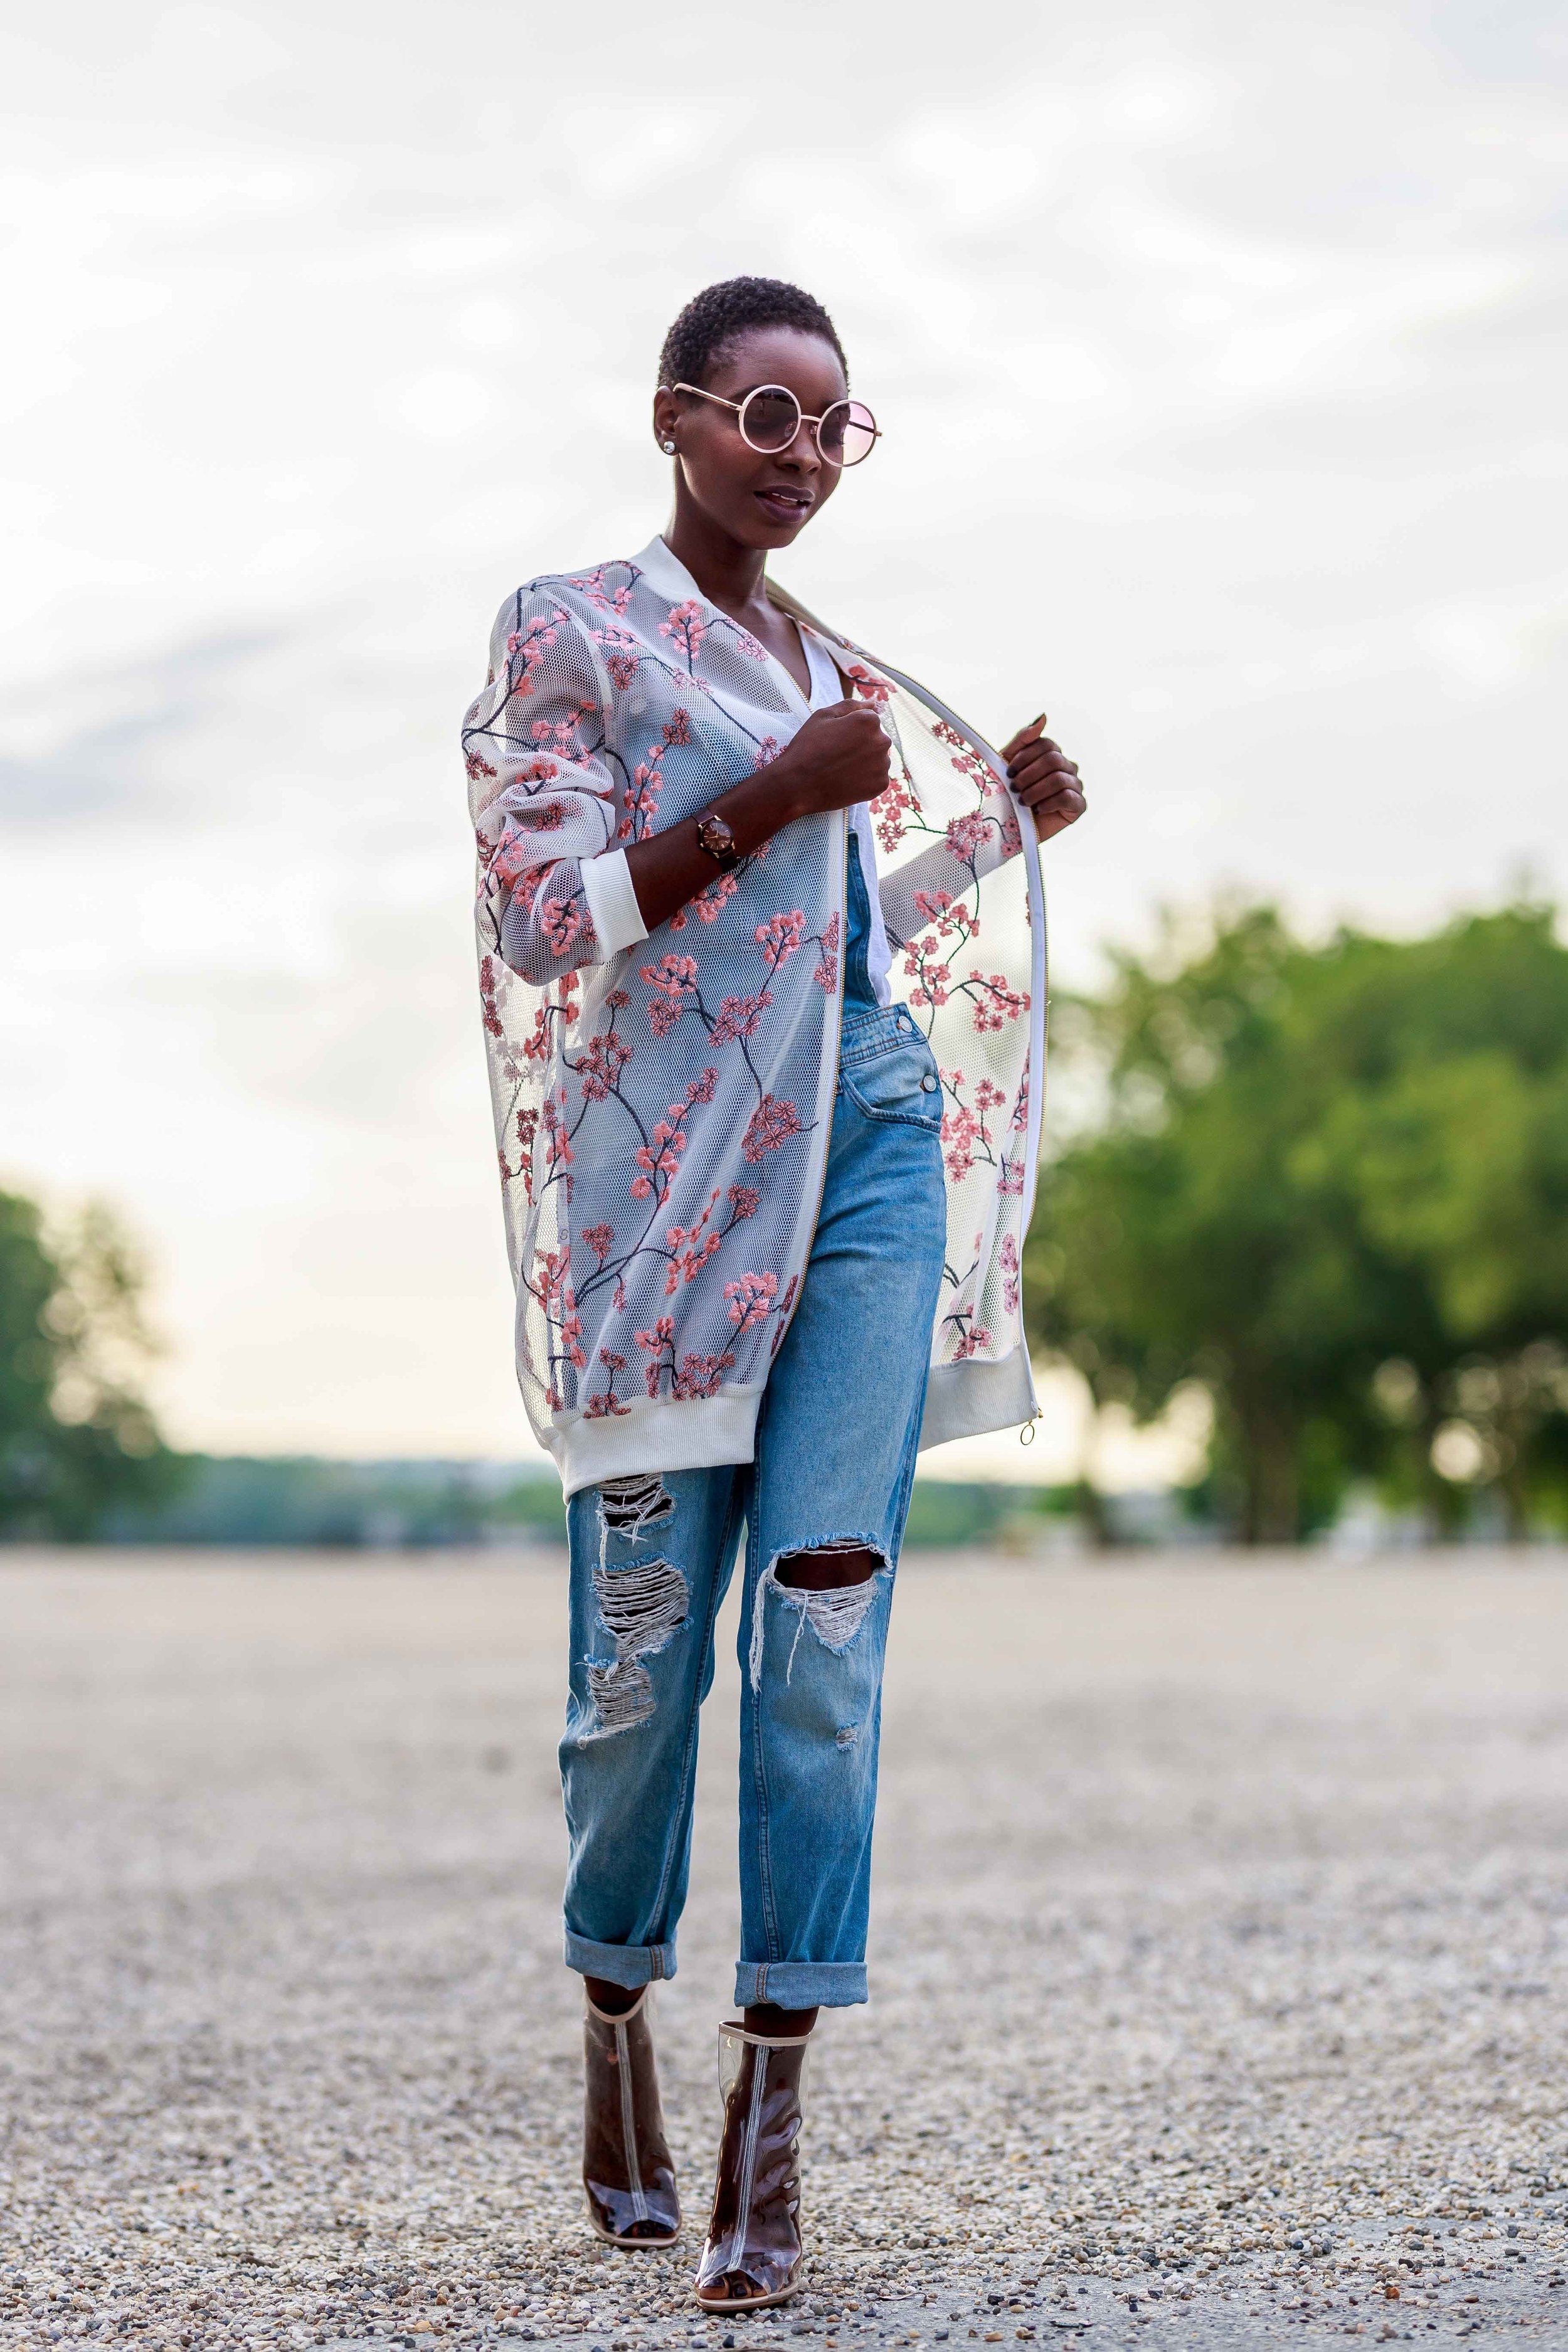 Sawour-modest-fashion-jacket-embroidered-brodé-veste-femme-woman-trendy-streetstyle.jpg